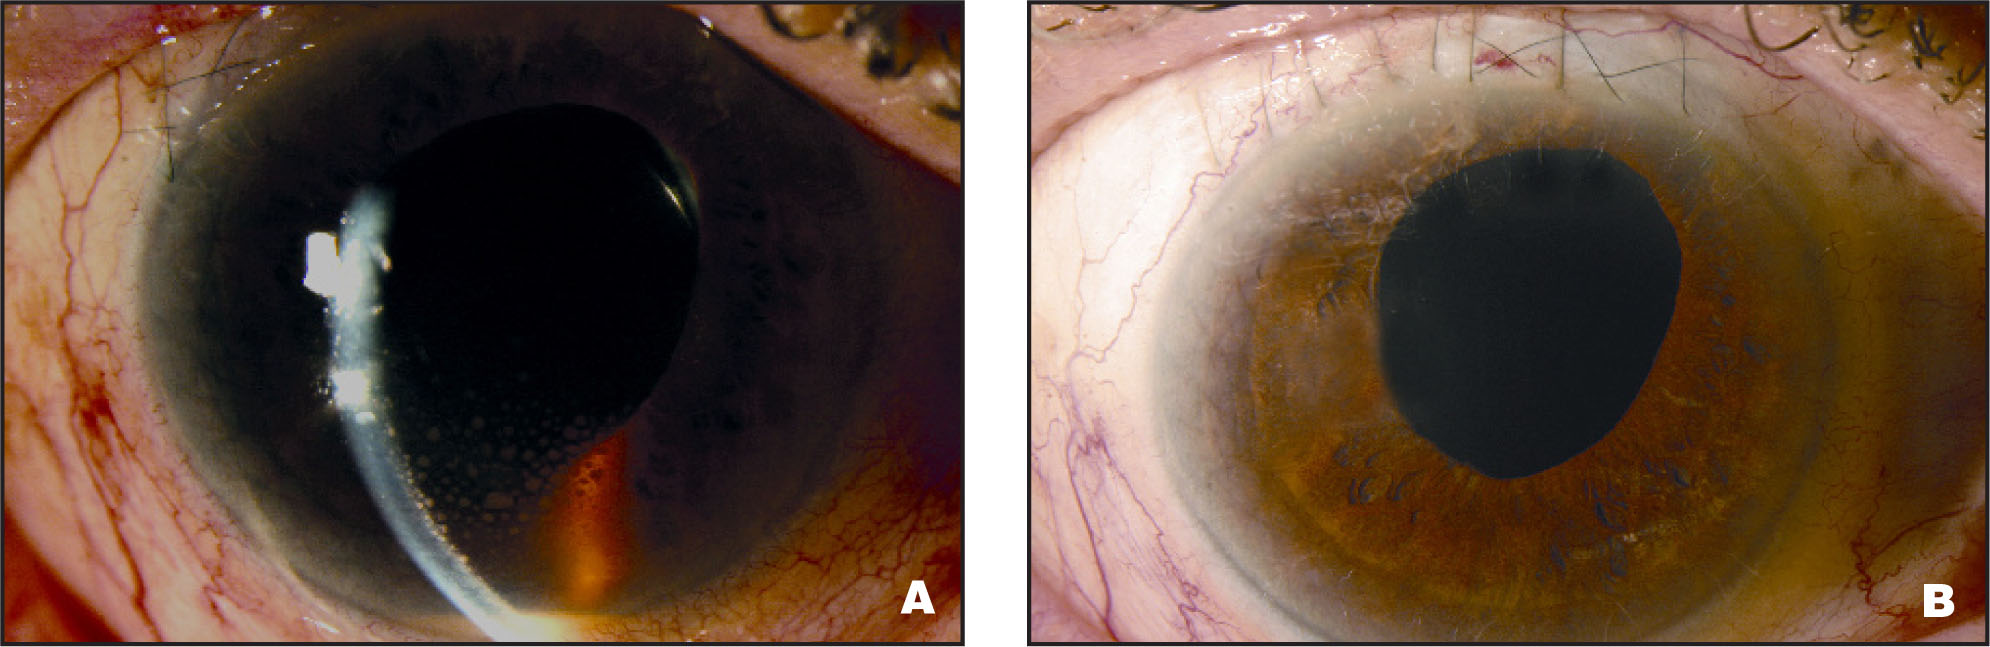 (A) Conjunctival Injection, Hypopyon, and Pigmented Granulomatous KPs (Patient 1, Table 1). (B) Complete Resolution of KPs Following Successful Surgical Management (Patient 1, Table 2).